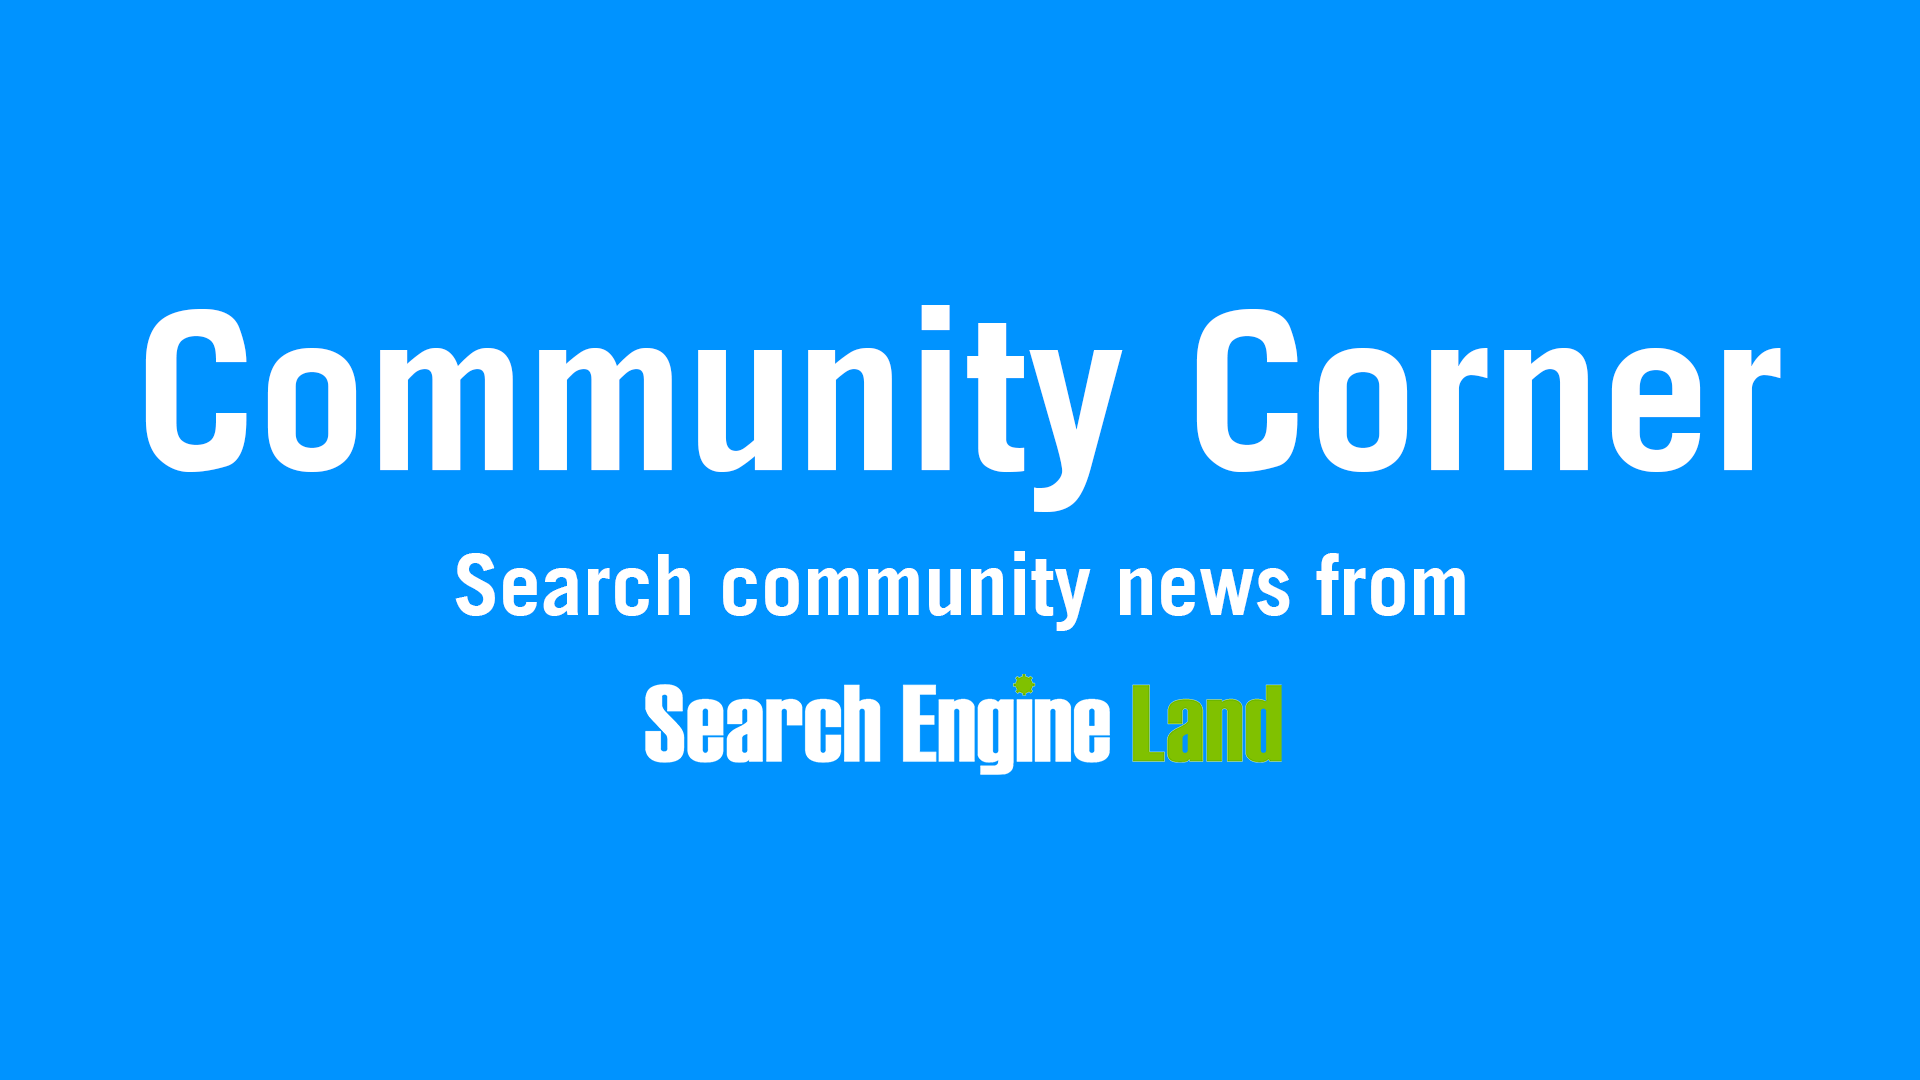 Introducing the Search Engine Land Community Corner